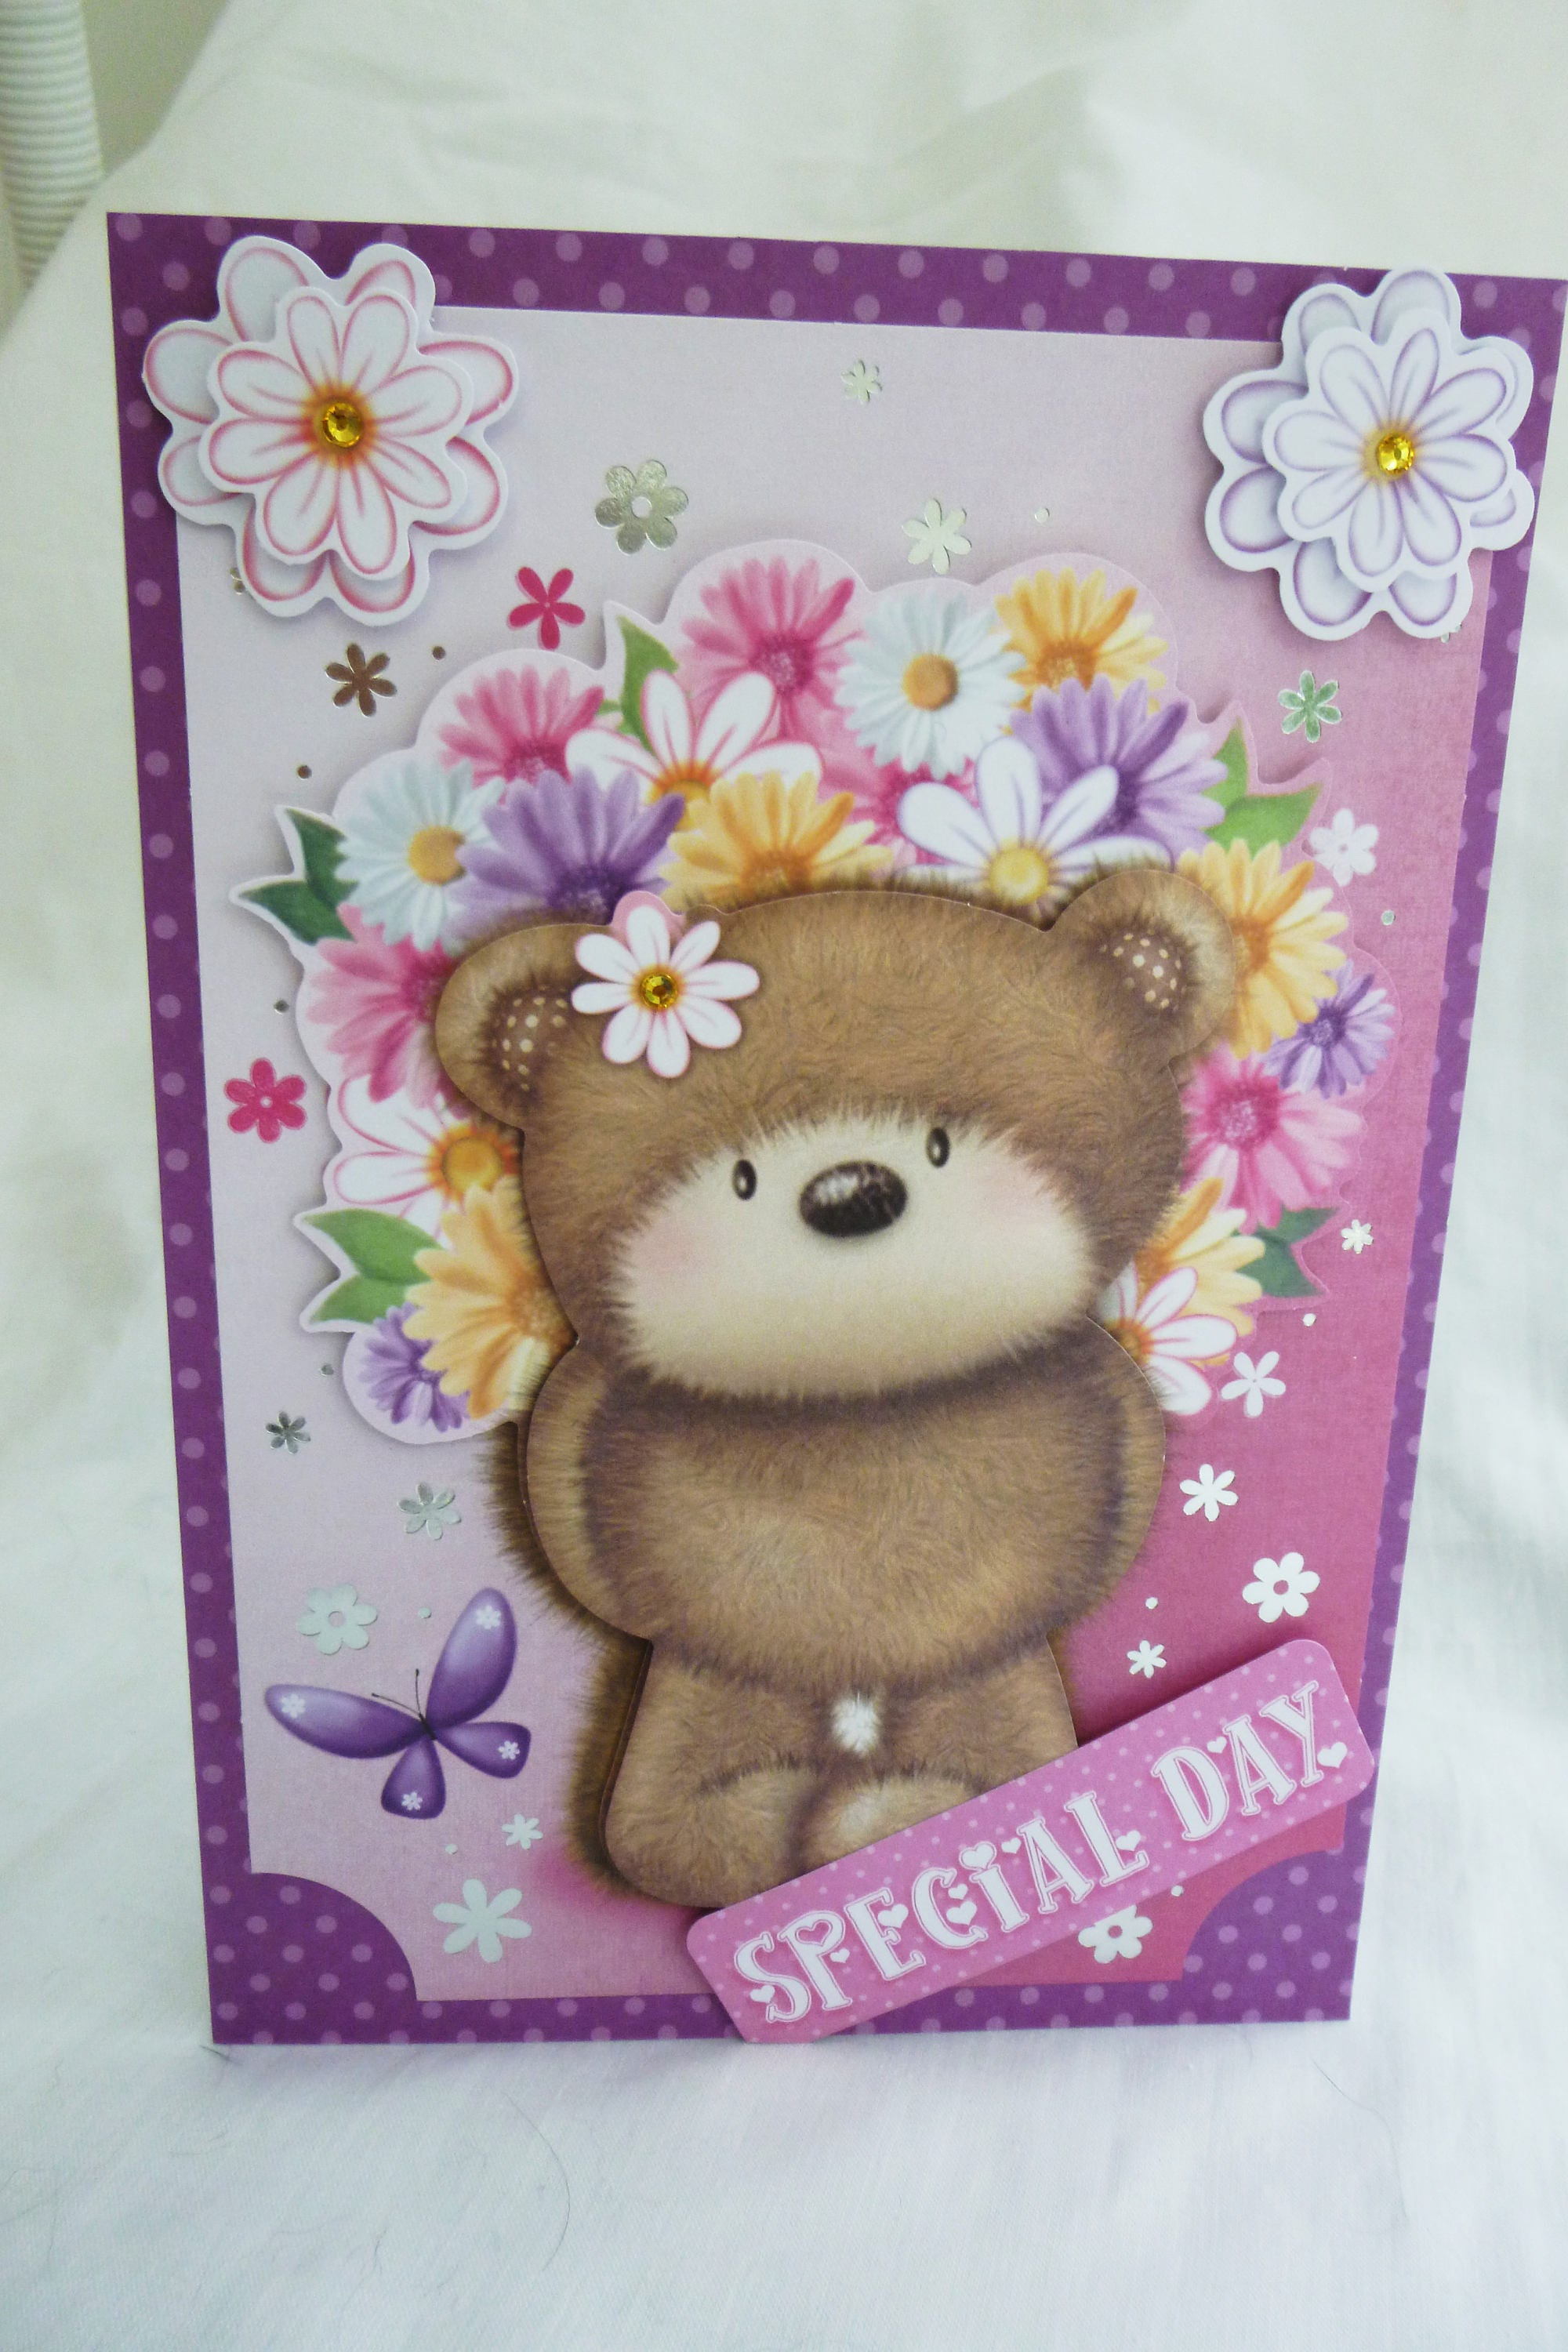 3d decoupage card birthday card greeting card brown bear with 3d decoupage card birthday card greeting card brown bear with flowers special day any age female mum daughter sister niece aunt m4hsunfo